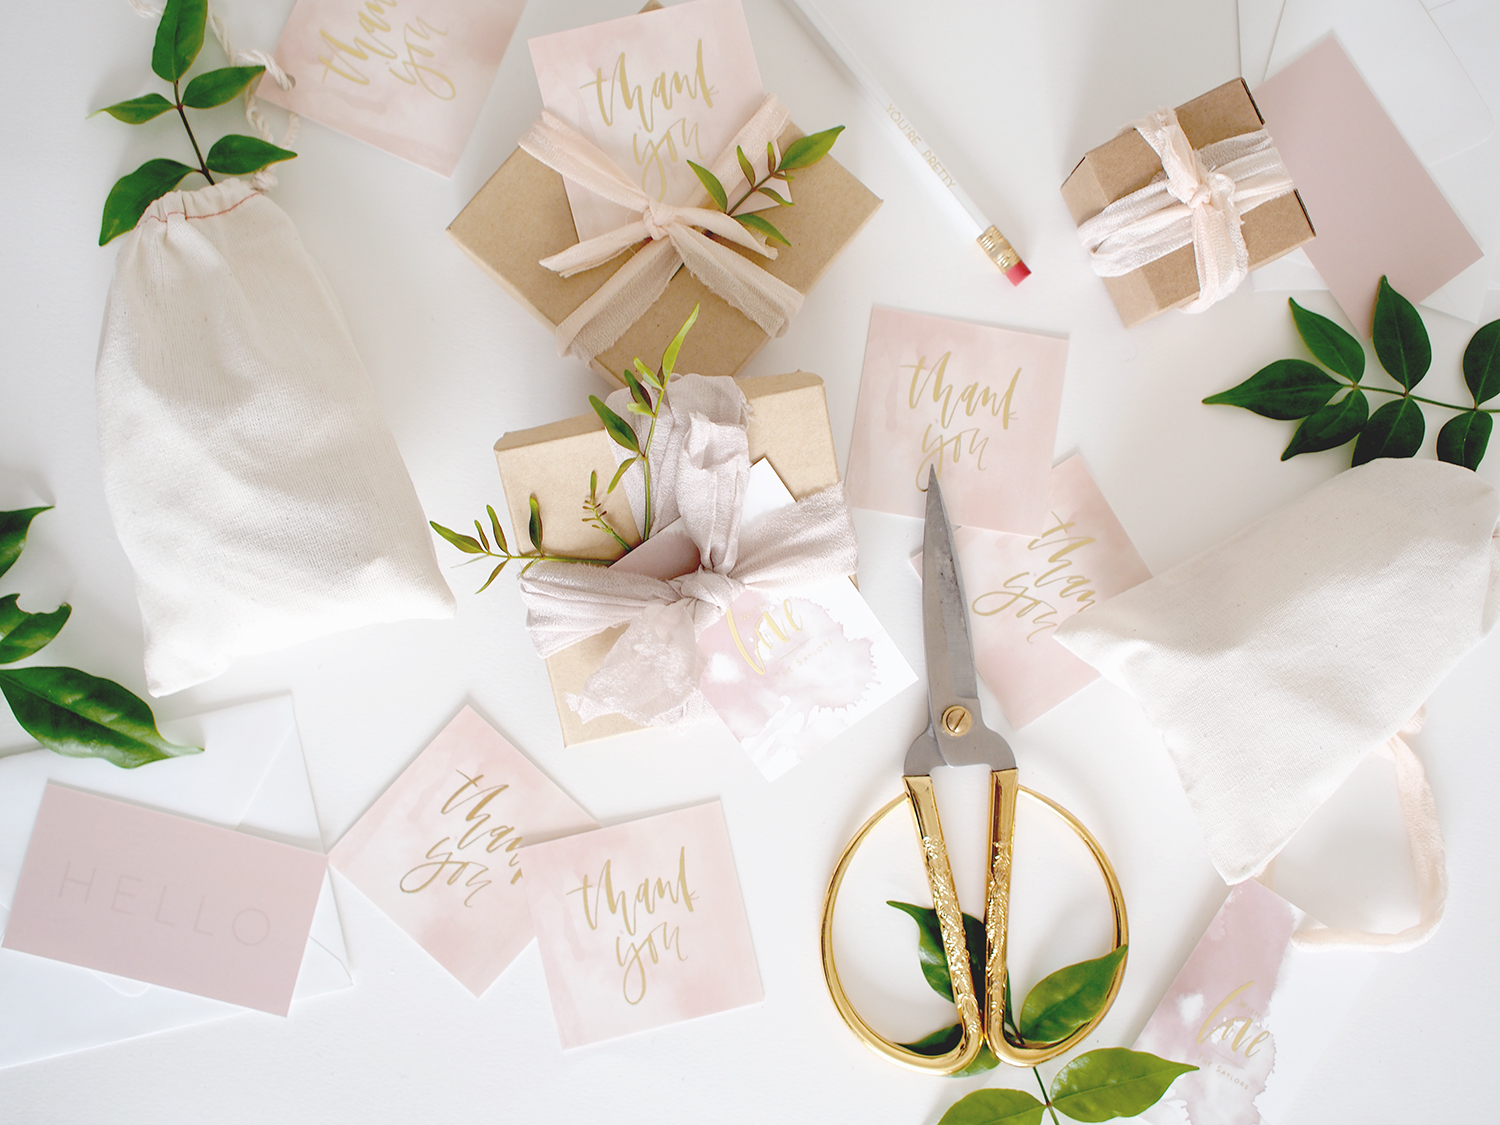 Custom thank you tags with gold foil for events for weddings   A Fabulous Fete